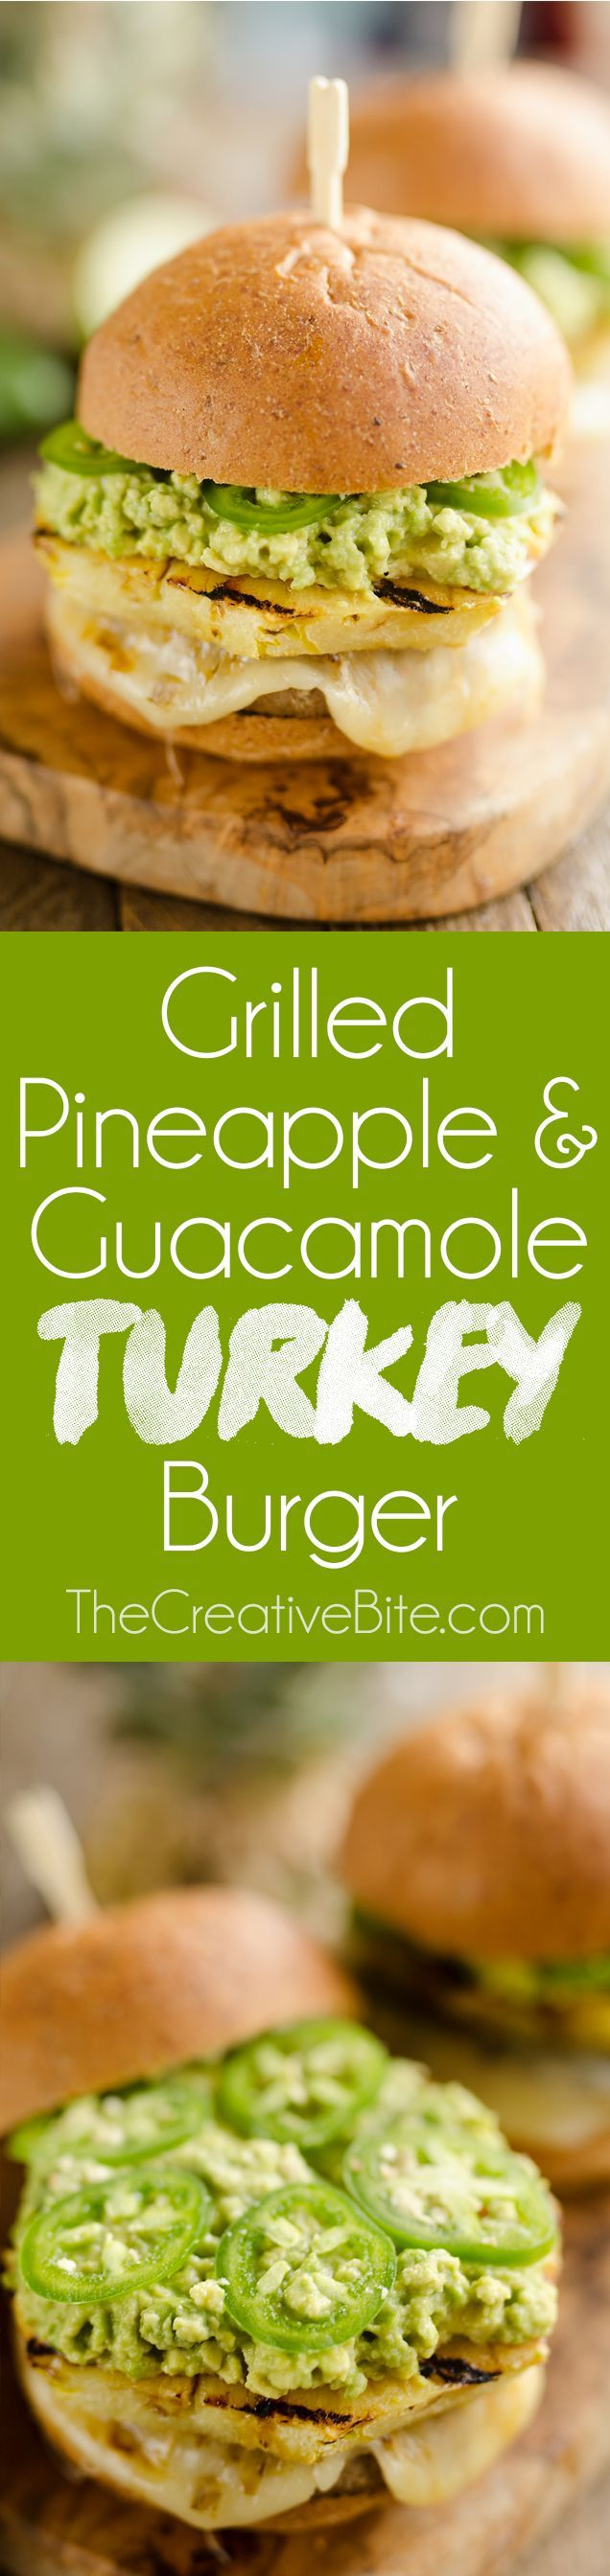 Grilled Pineapple & Guacamole Turkey Burgers are a healthy and easy recipe made on the grill in just 20 minutes! Juicy Jennie-O Turkey Burgers are topped with pepper jack cheese, sweet grilled pineapple, guacamole and fresh jalapeños for a zesty burger pe